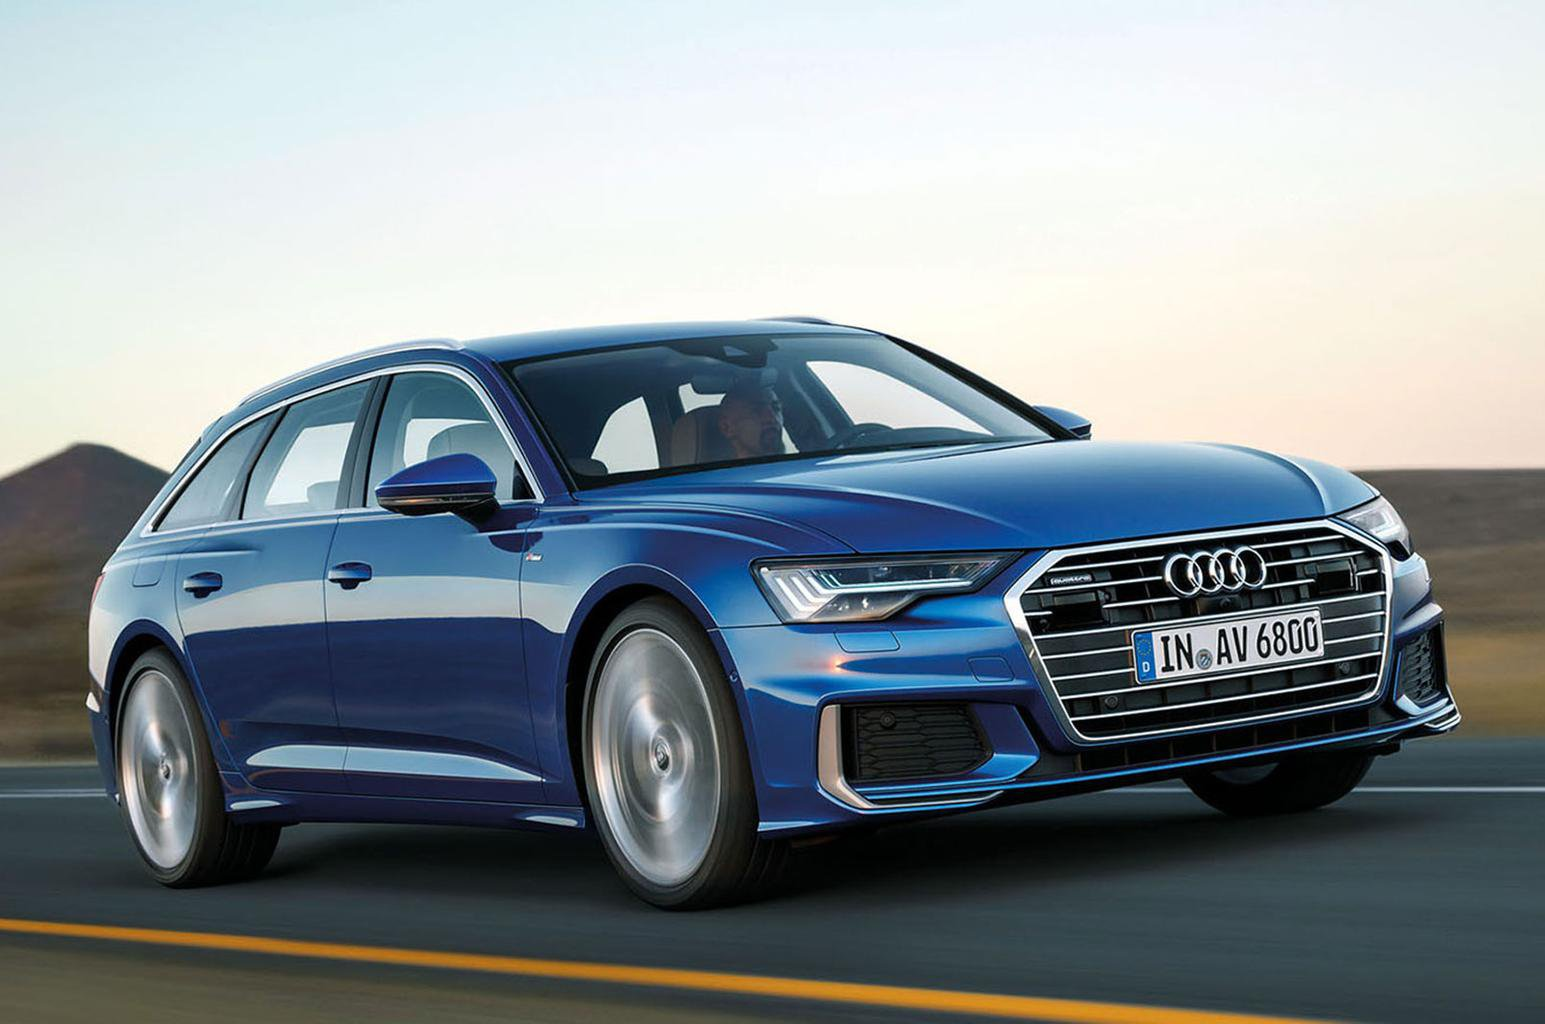 2018 Audi A6 Avant – price, specs and release date